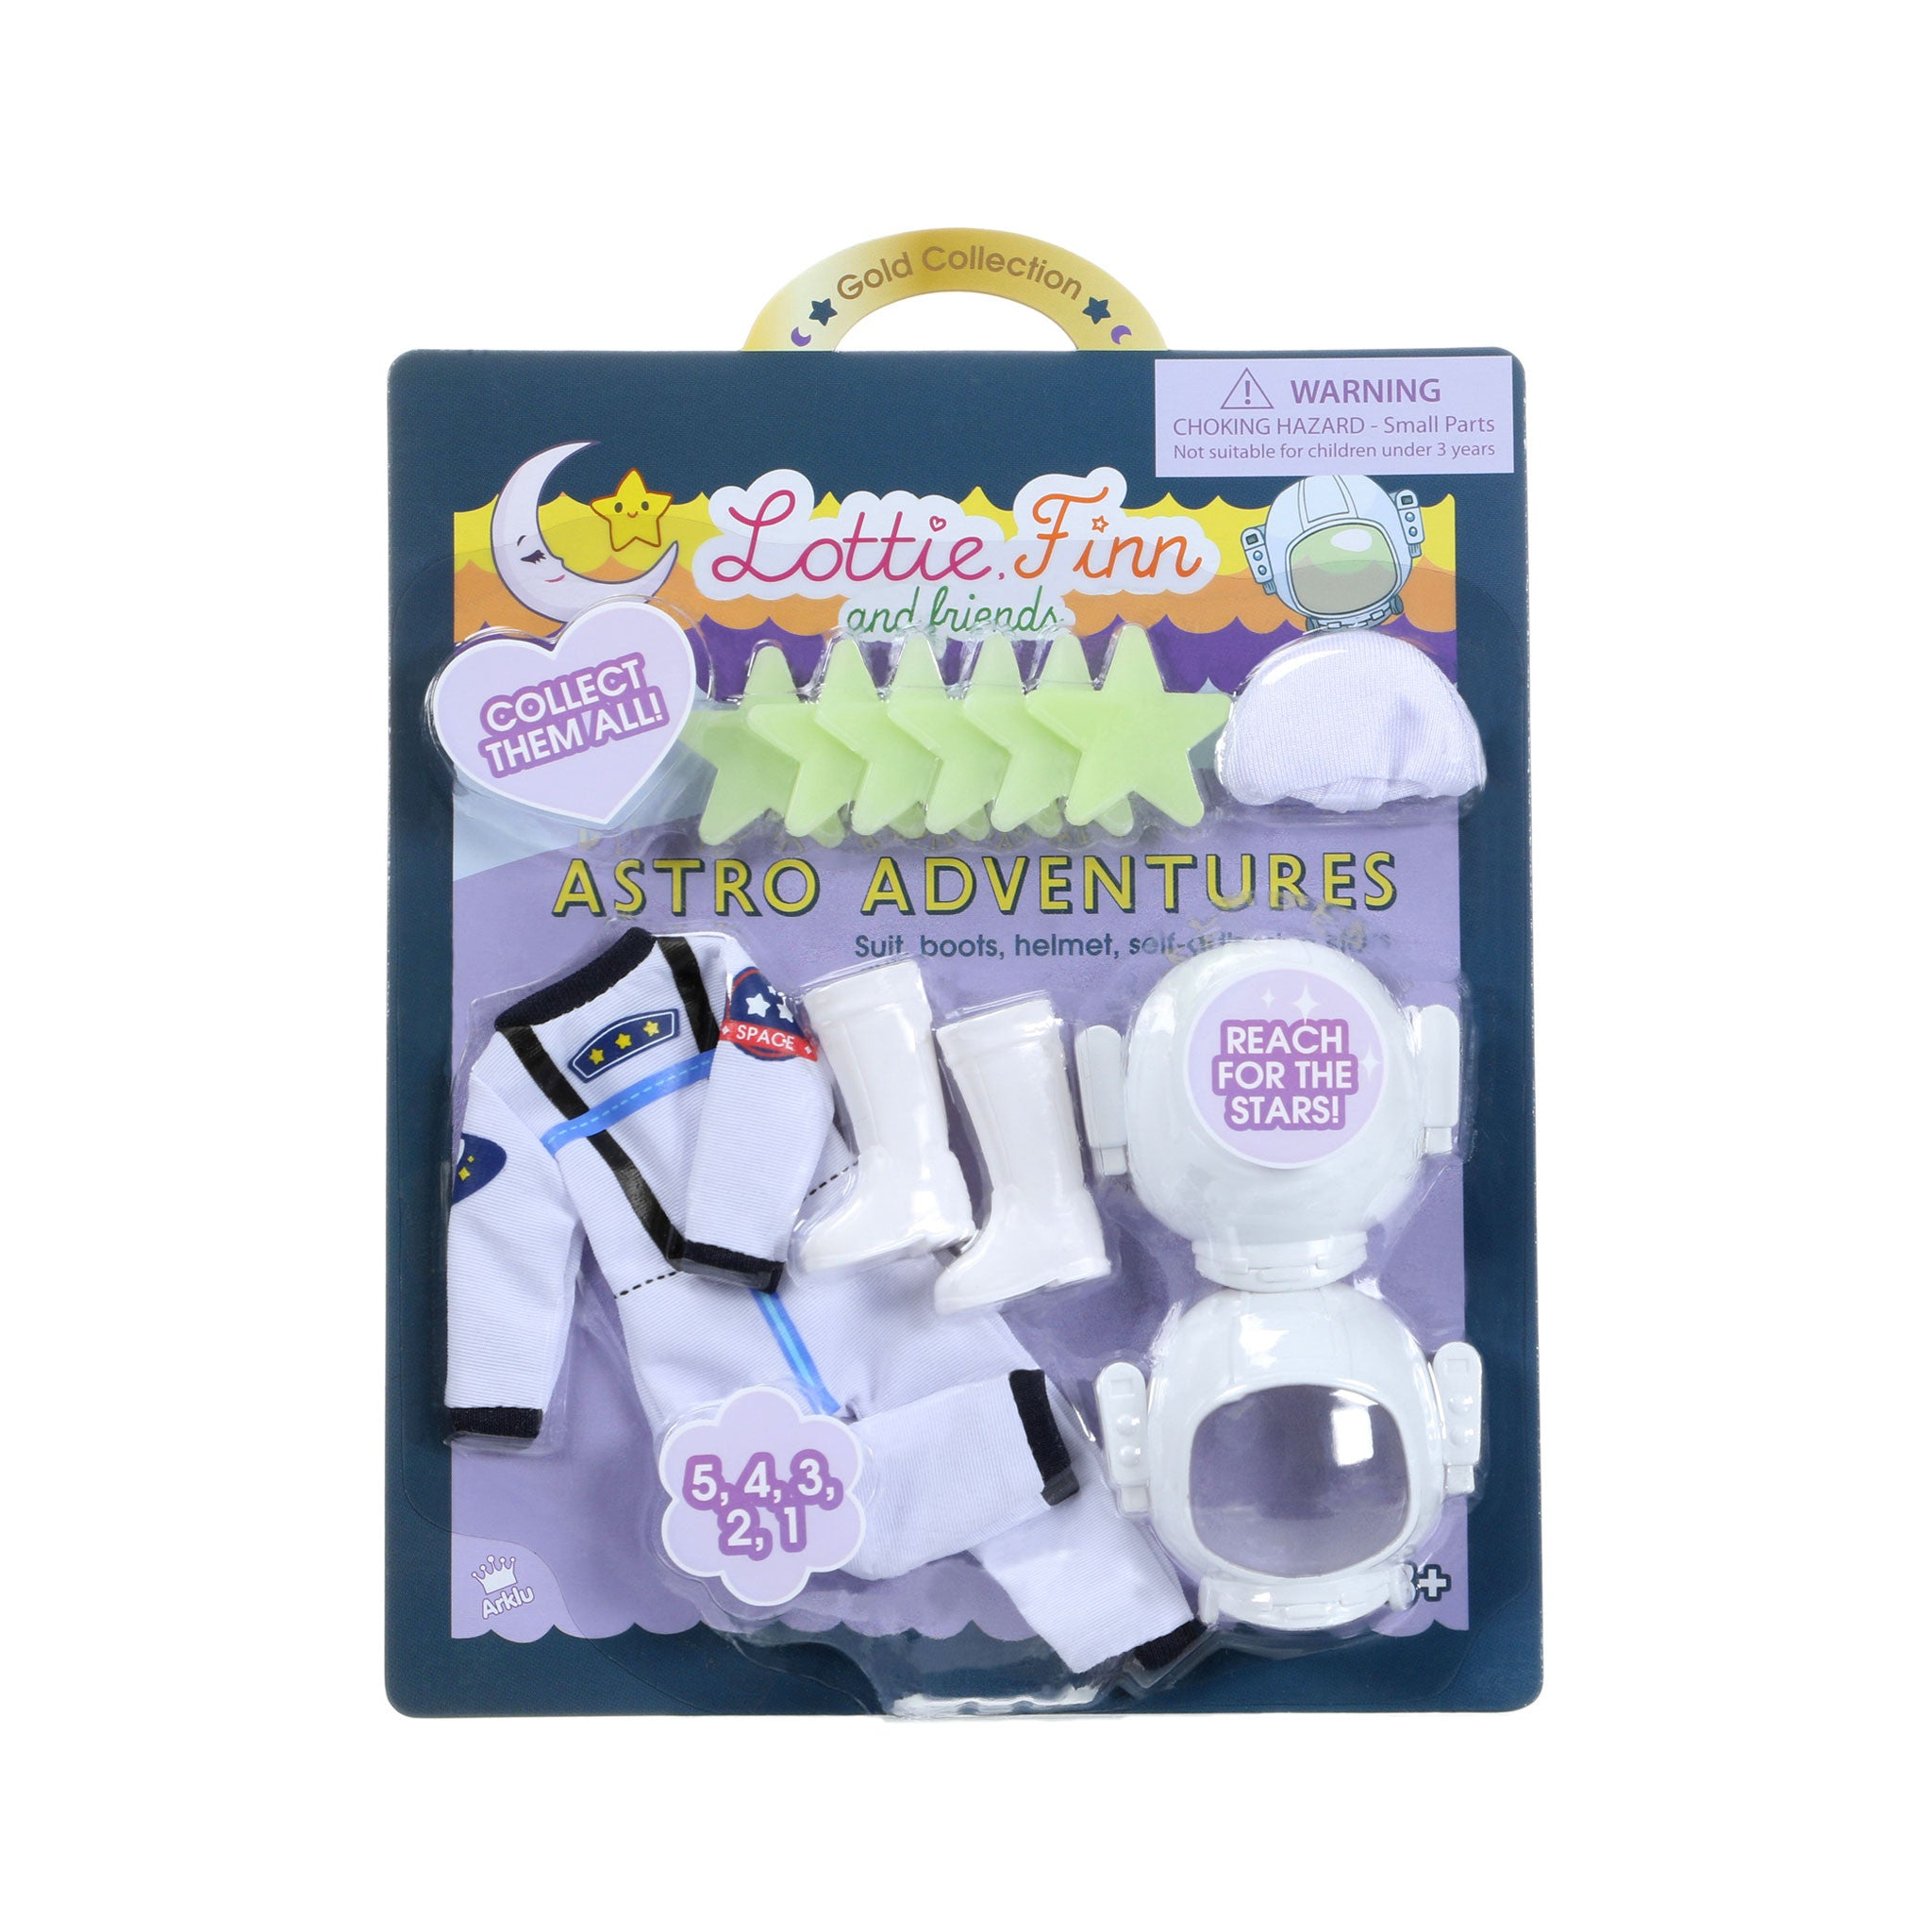 Astro Adventures - Lottie Accessory Set - SLIGHTLY DAMAGED PACKAGING